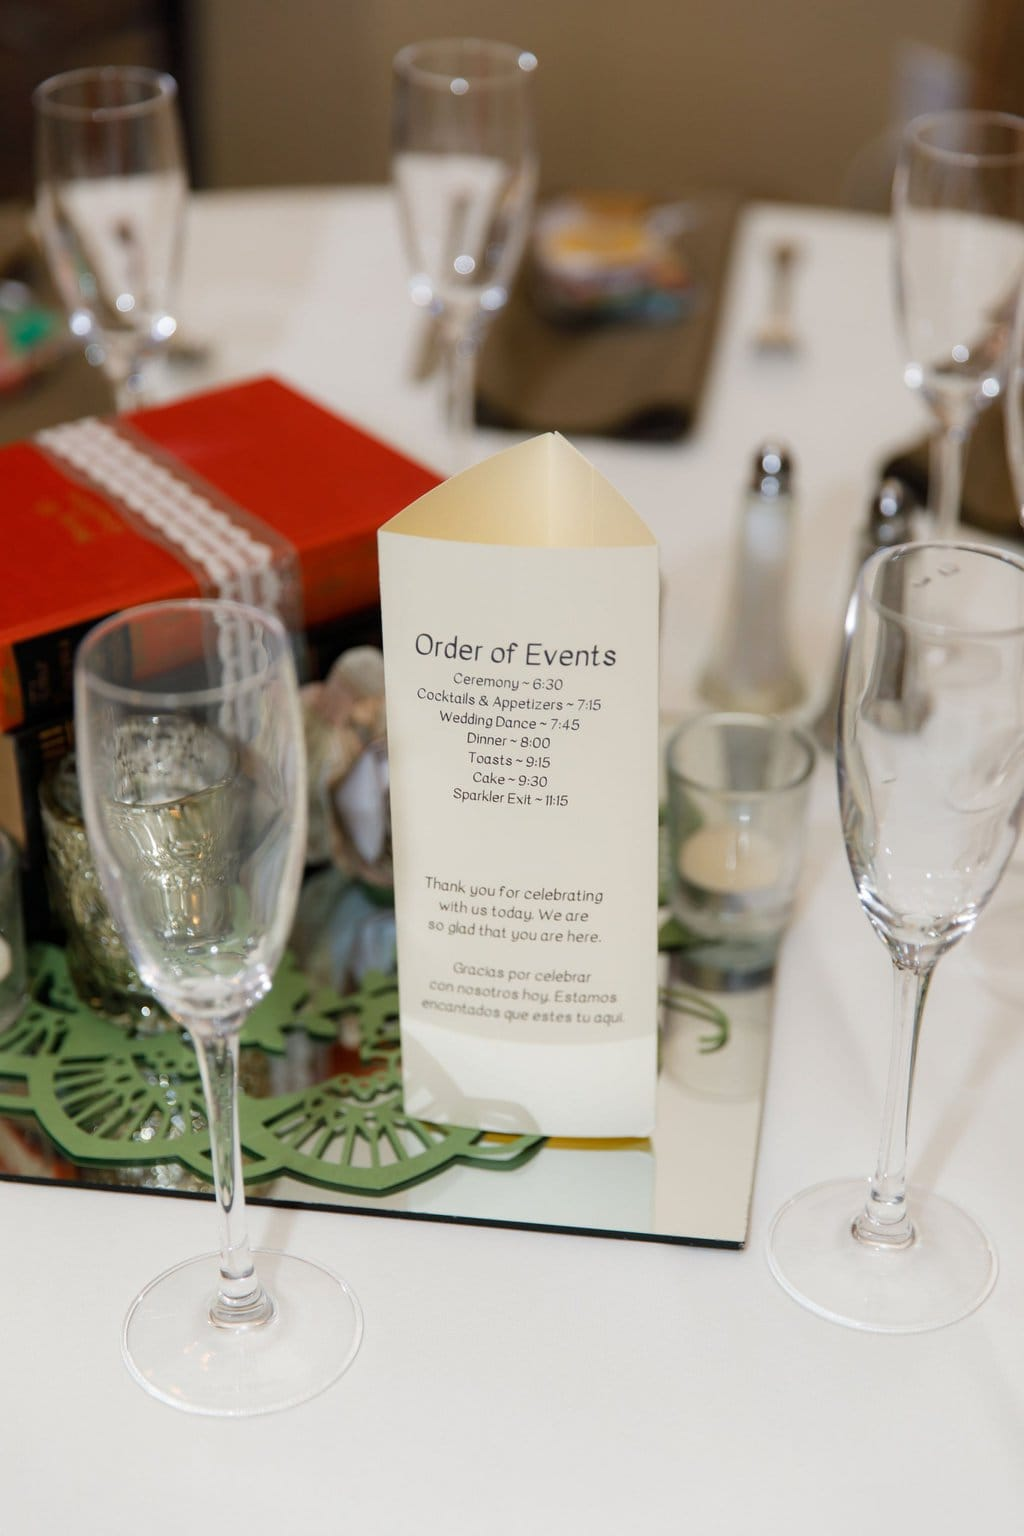 Order of events centerpiece